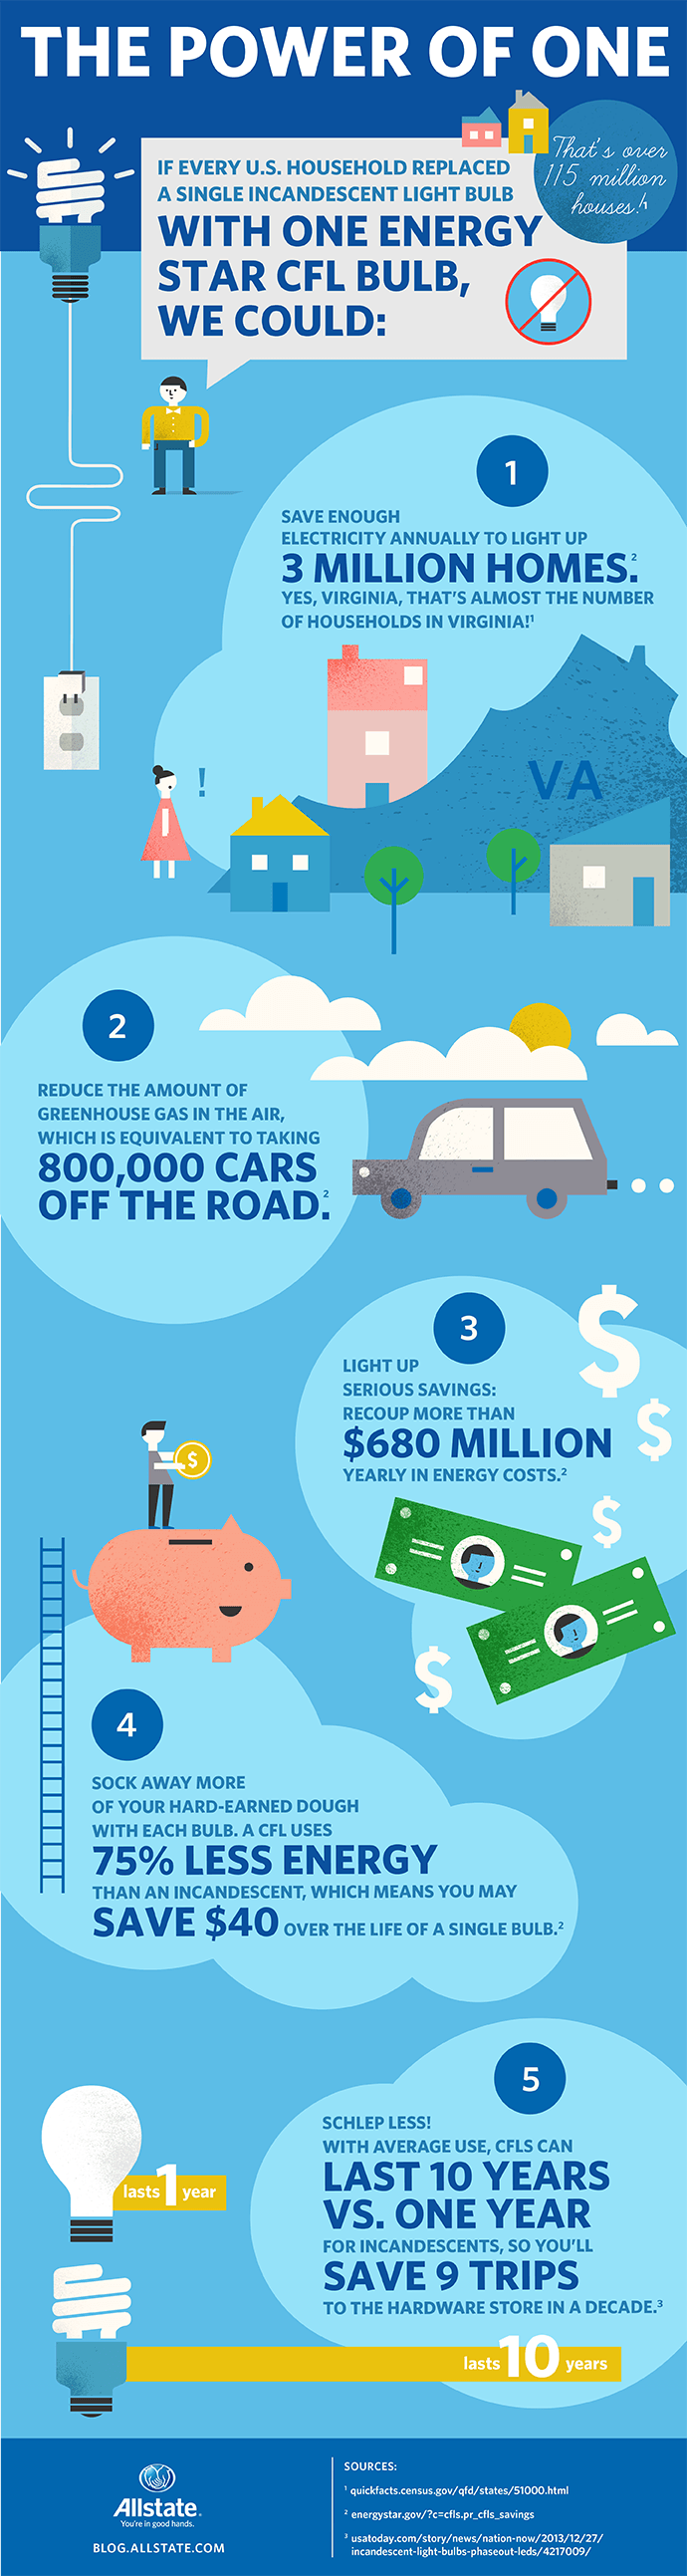 allstate_infographic_r21